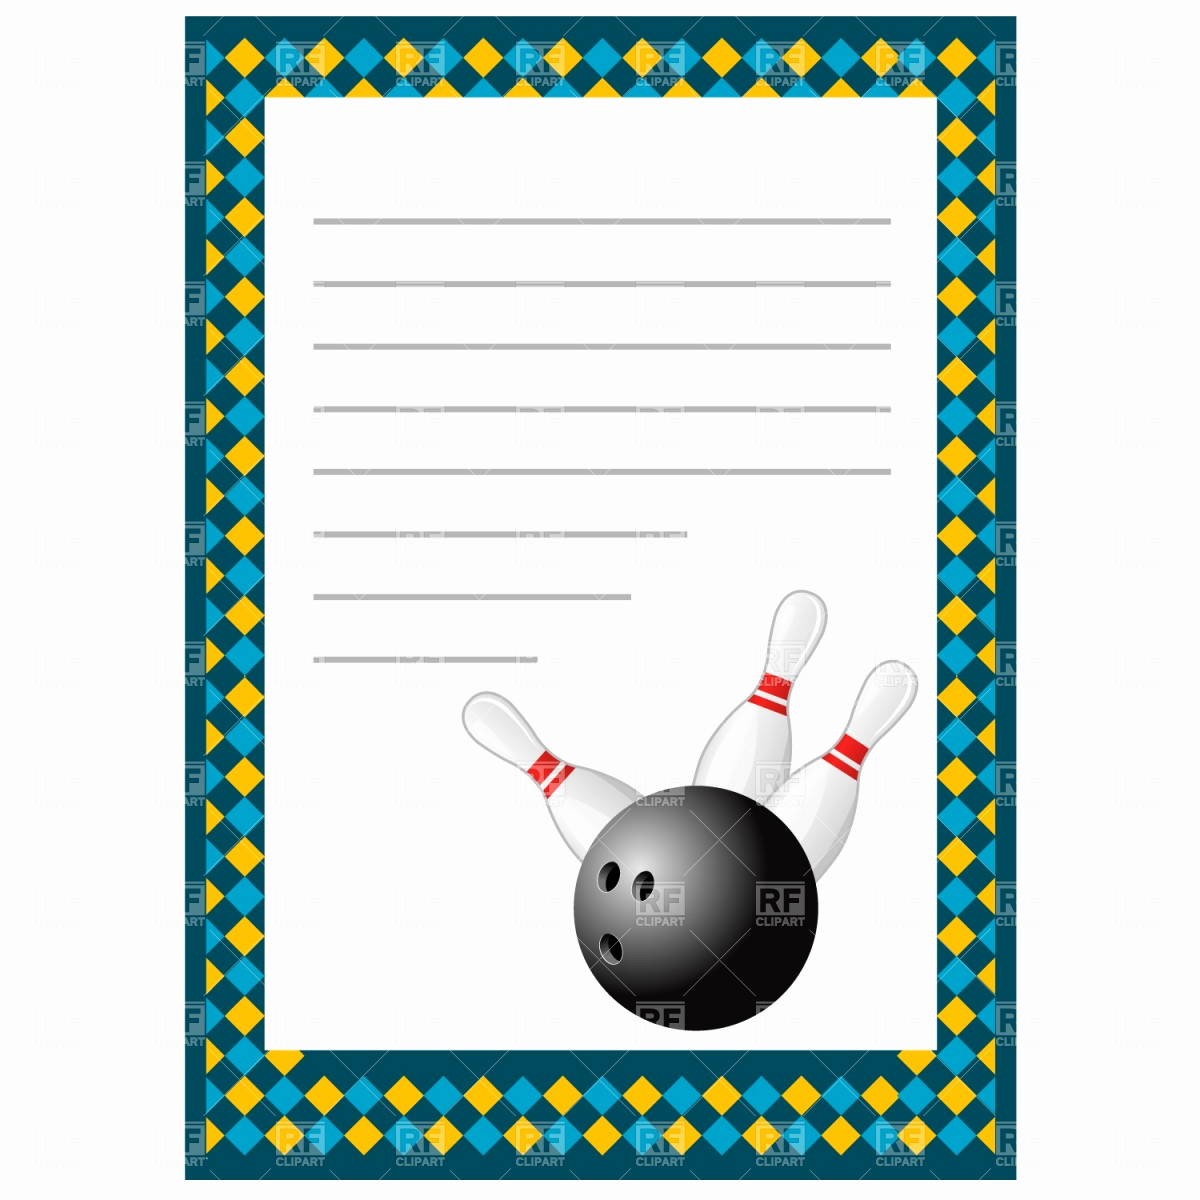 Bowling Invitation Template Free Elegant Cardit